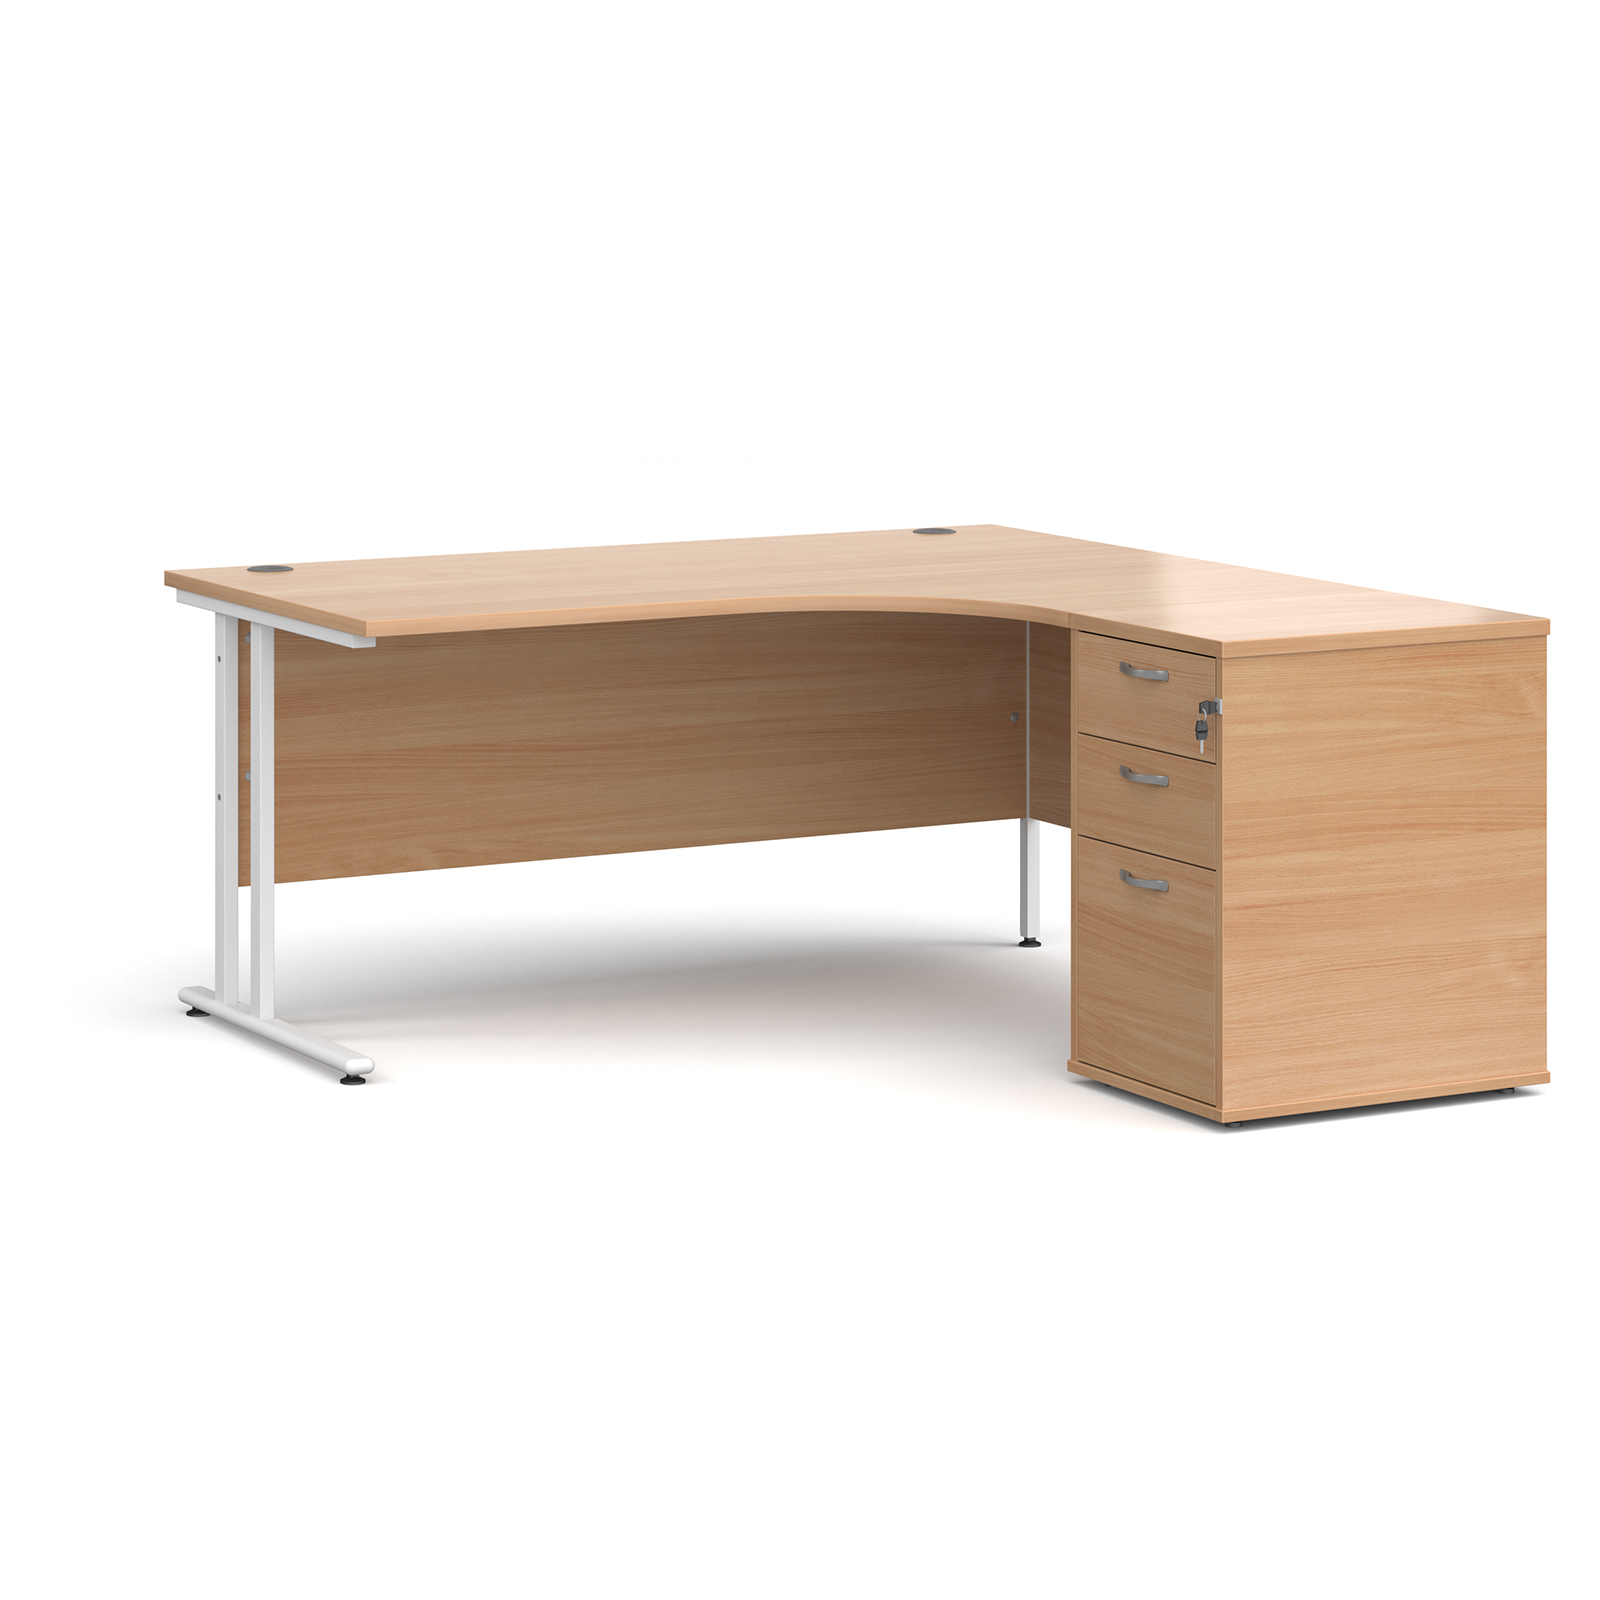 Right Handed Maestro 25 right hand ergonomic desk 1600mm with white cantilever frame and desk high pedestal - beech